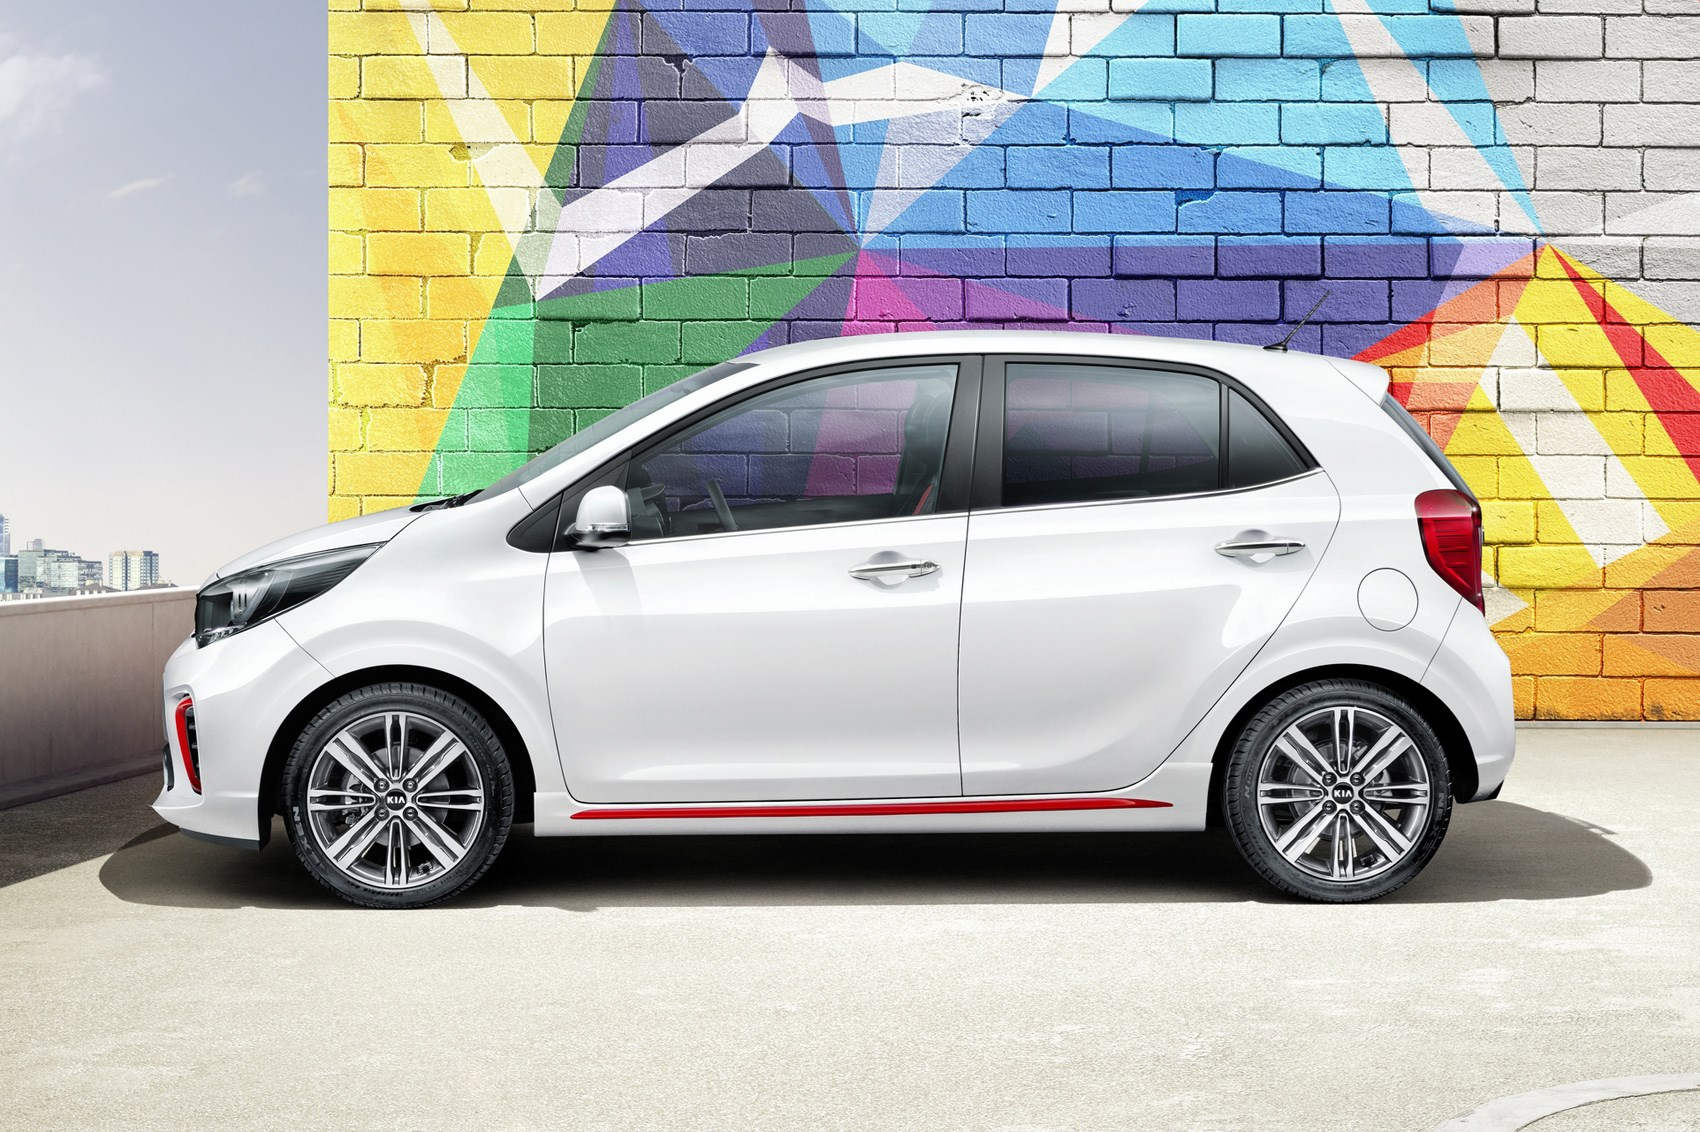 new kia picanto v3 0 meet korea 39 s slickest city car yet. Black Bedroom Furniture Sets. Home Design Ideas